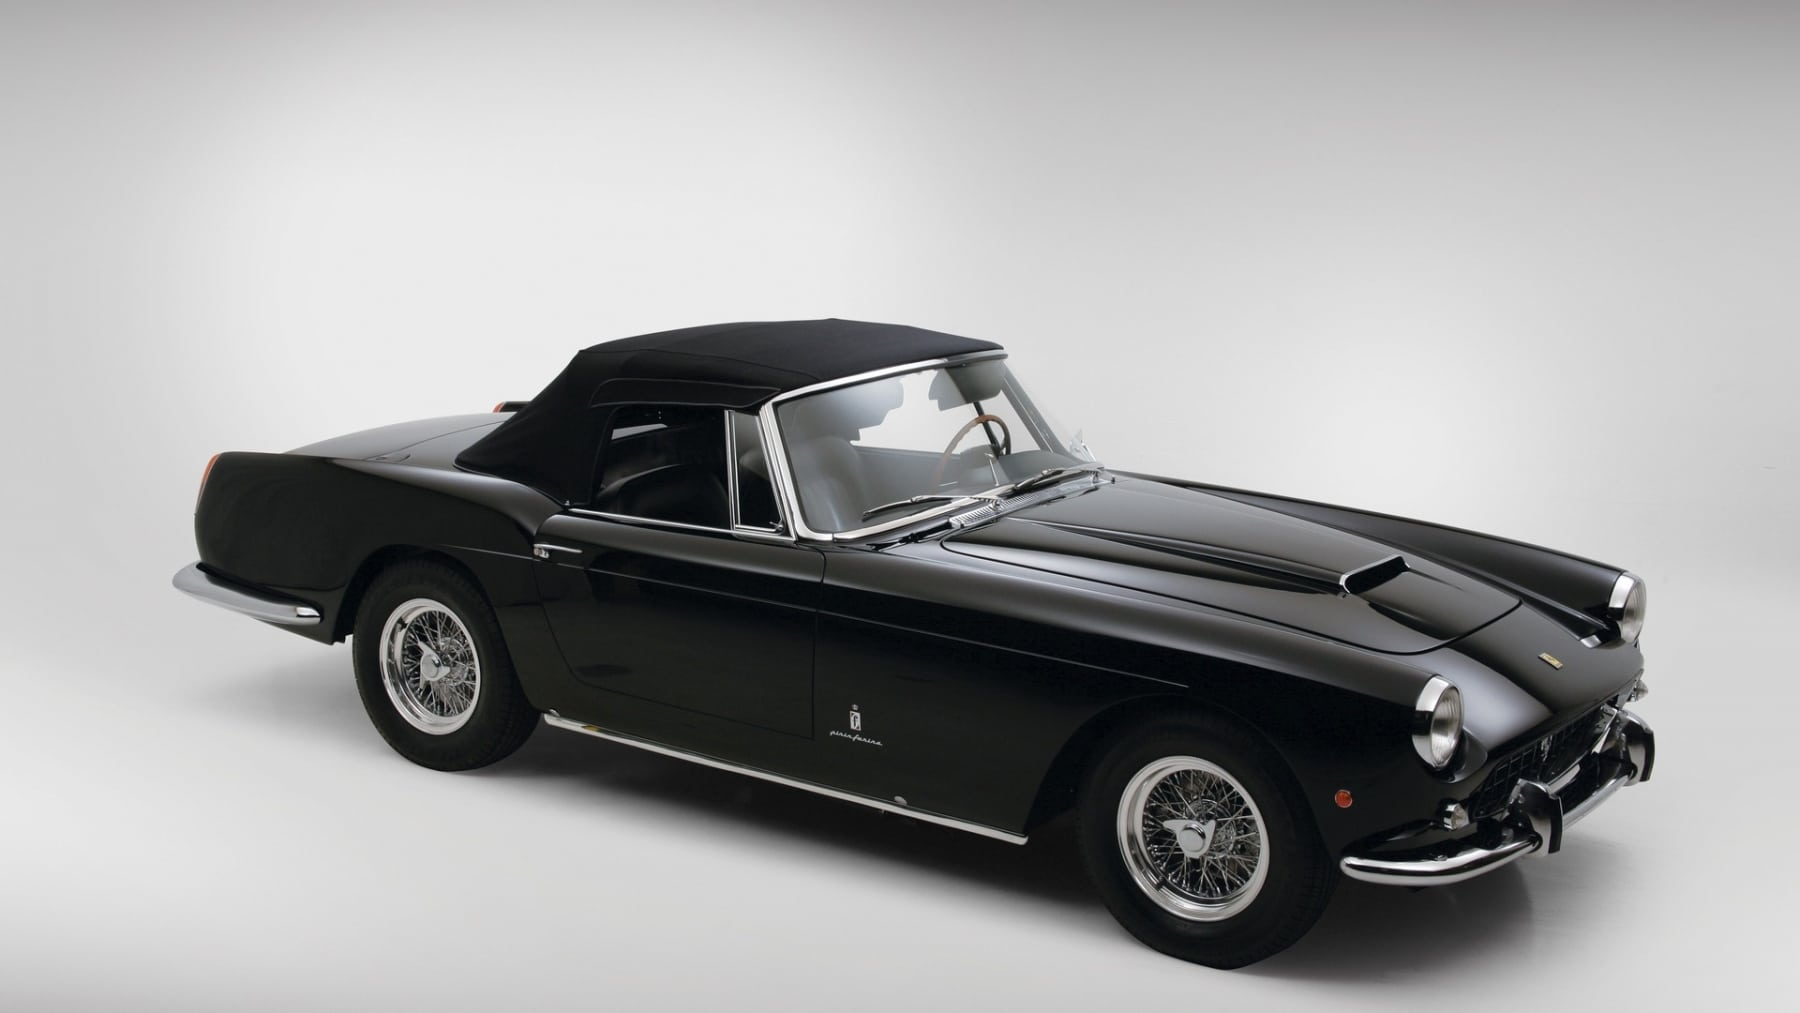 12 Things to Look For When Buying Classic Cars | Man of Many